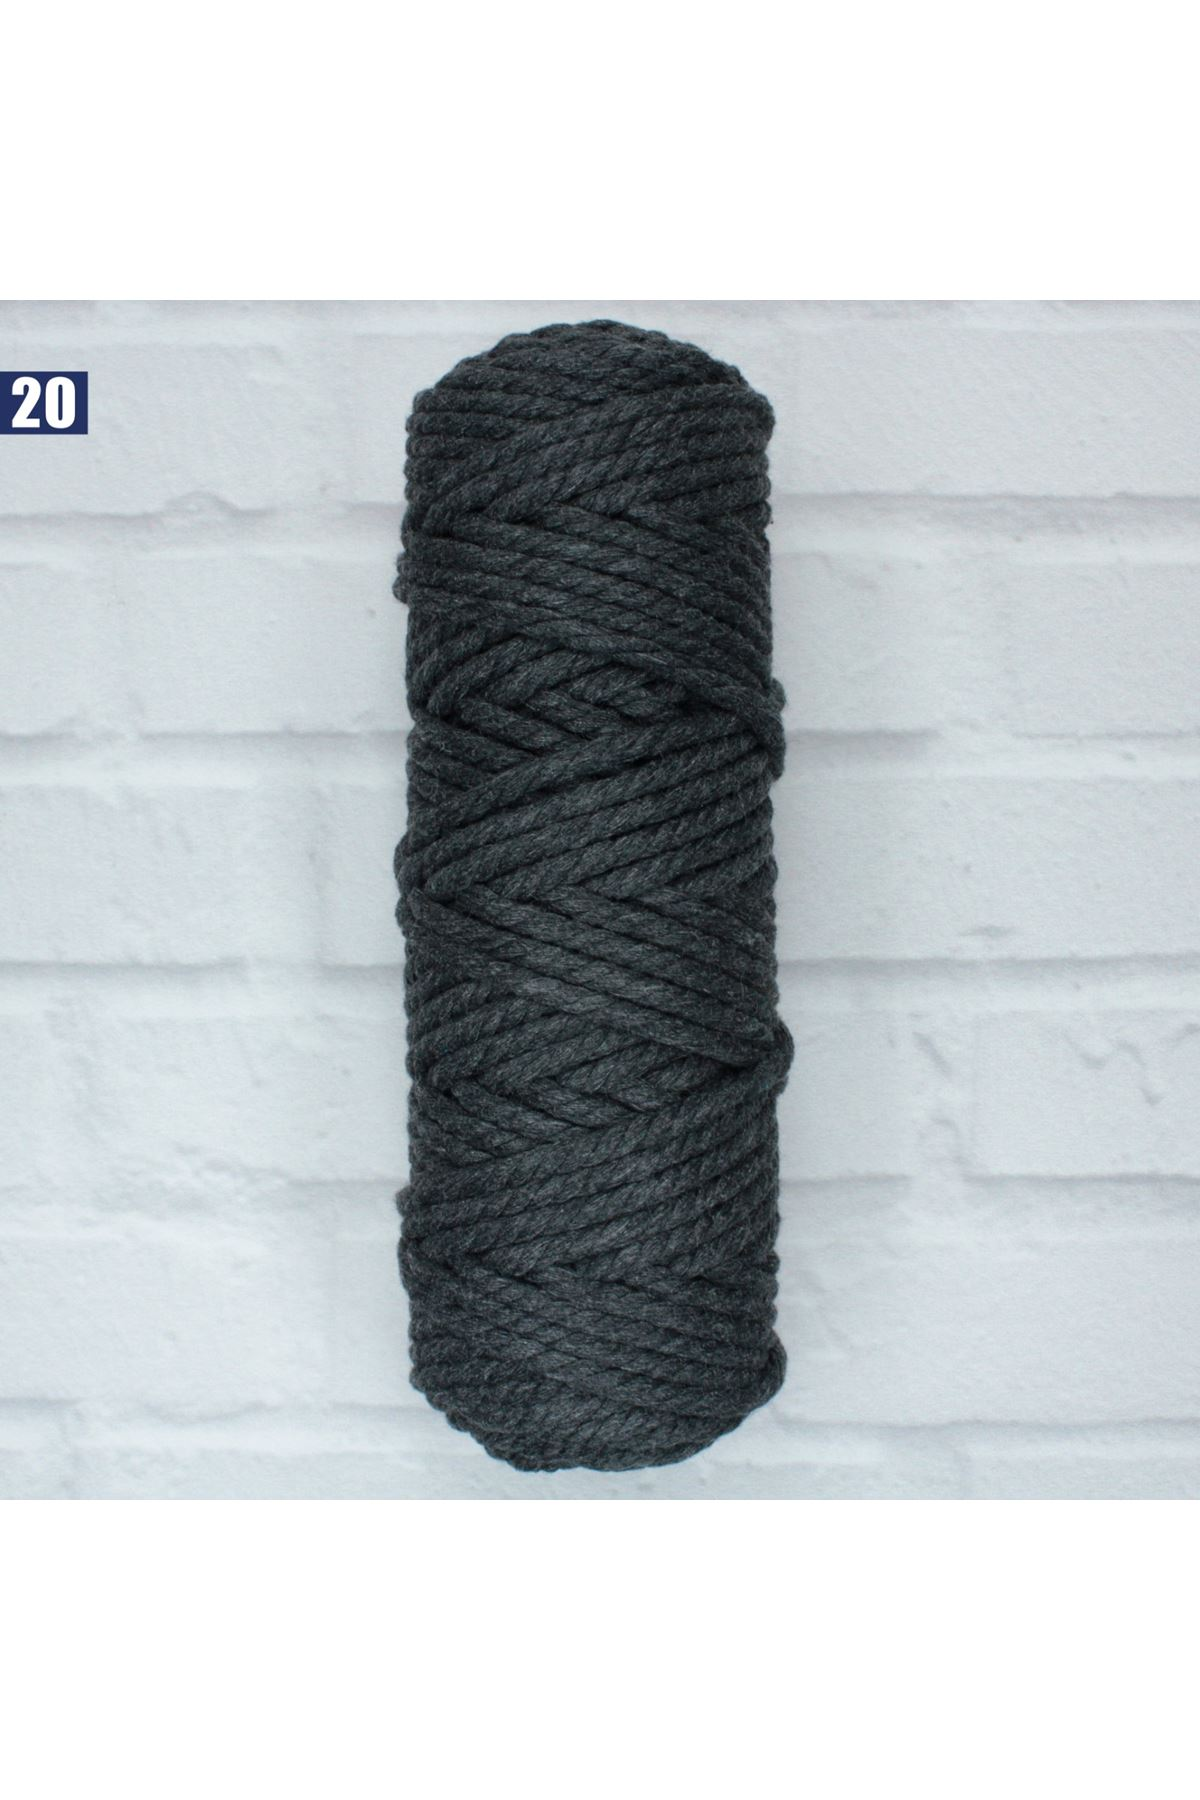 Büklüm Cotton 20